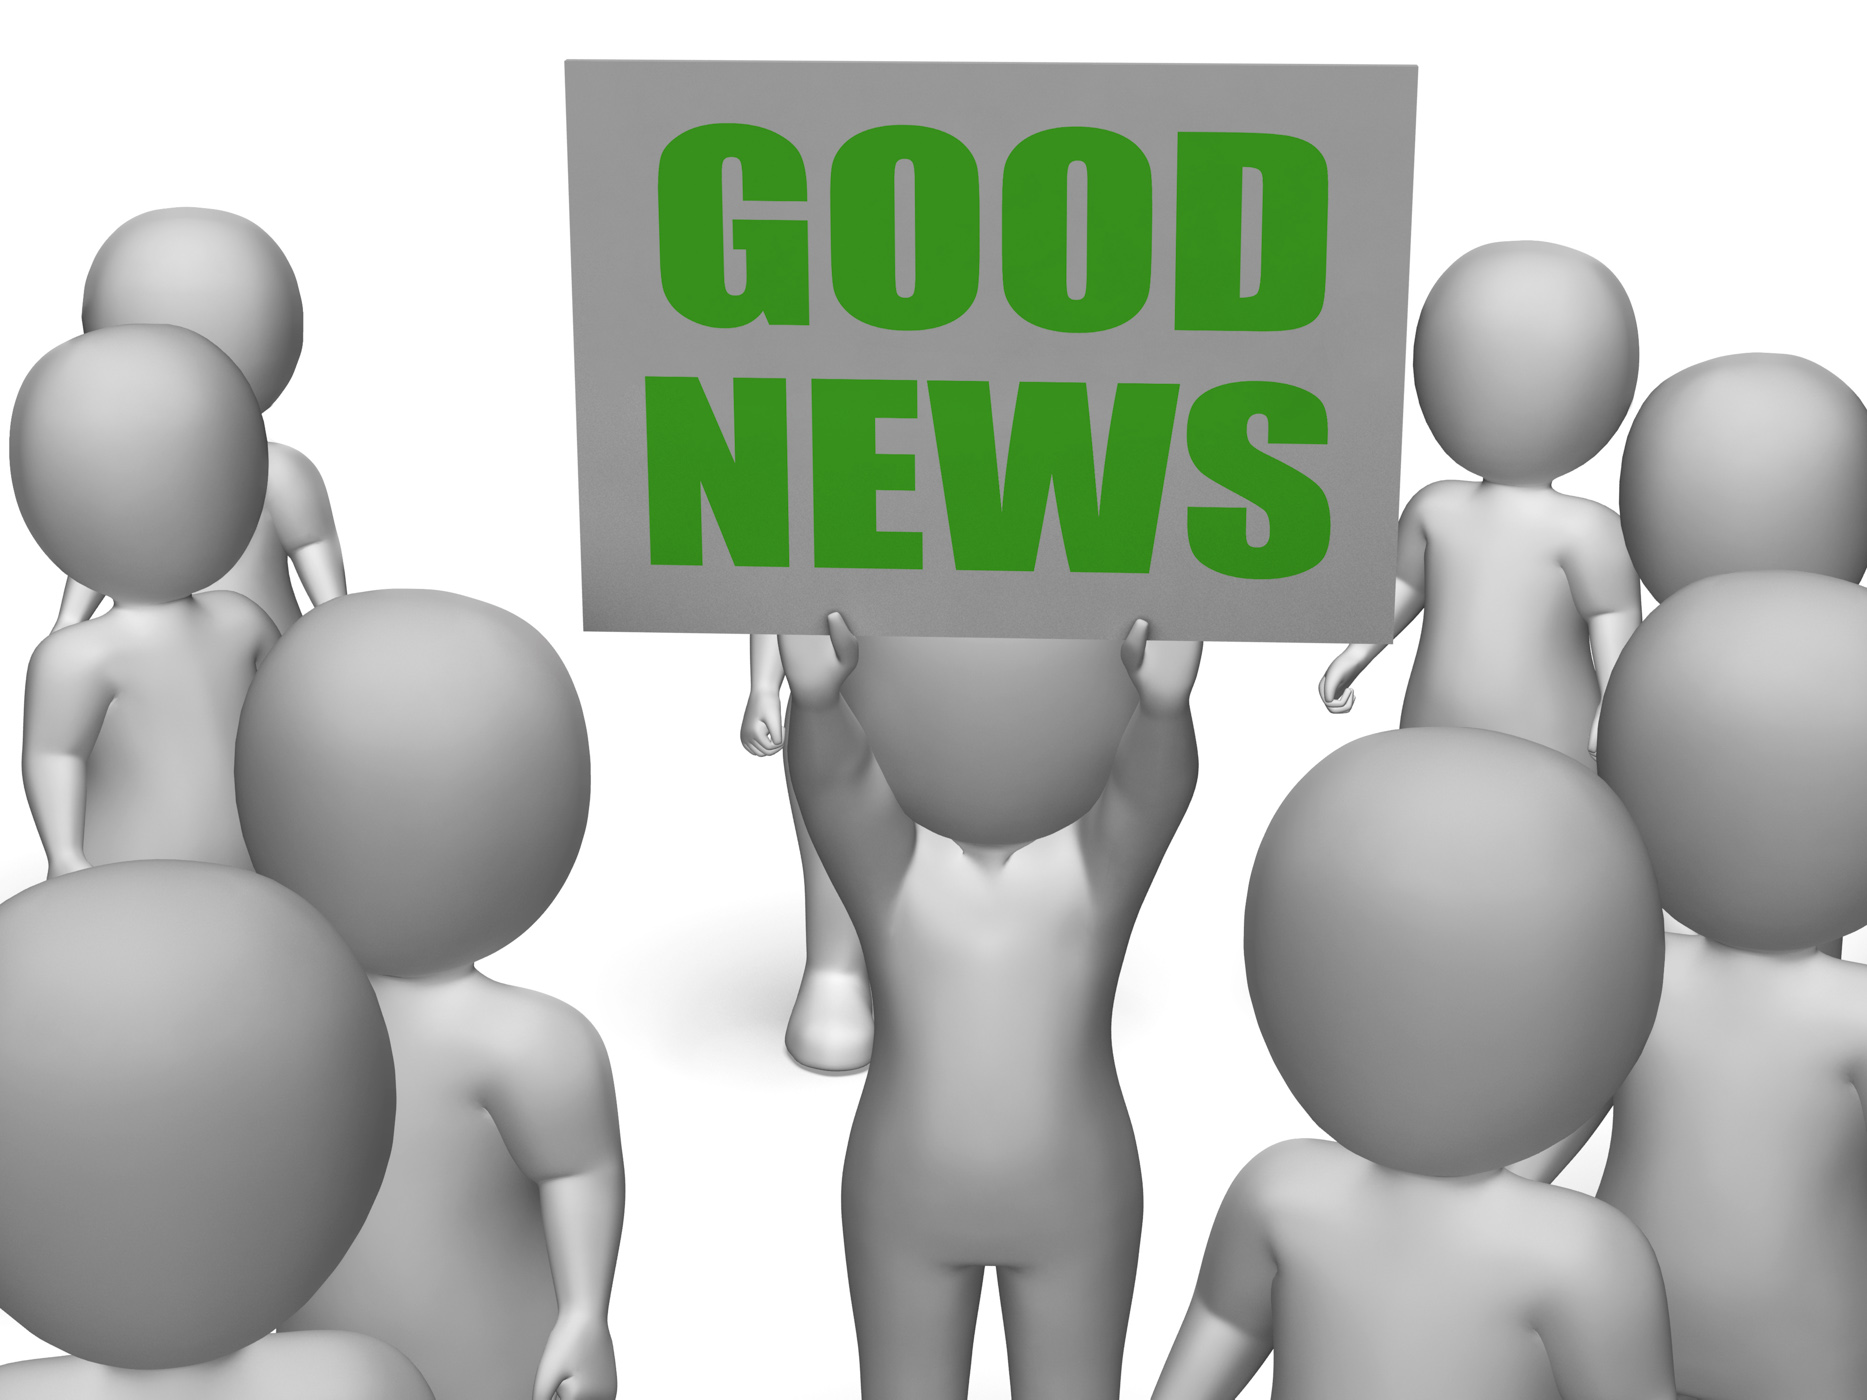 Good News Board Character Means Receiving Great News, Inspiration, Success, Succeed, Sign, HQ Photo